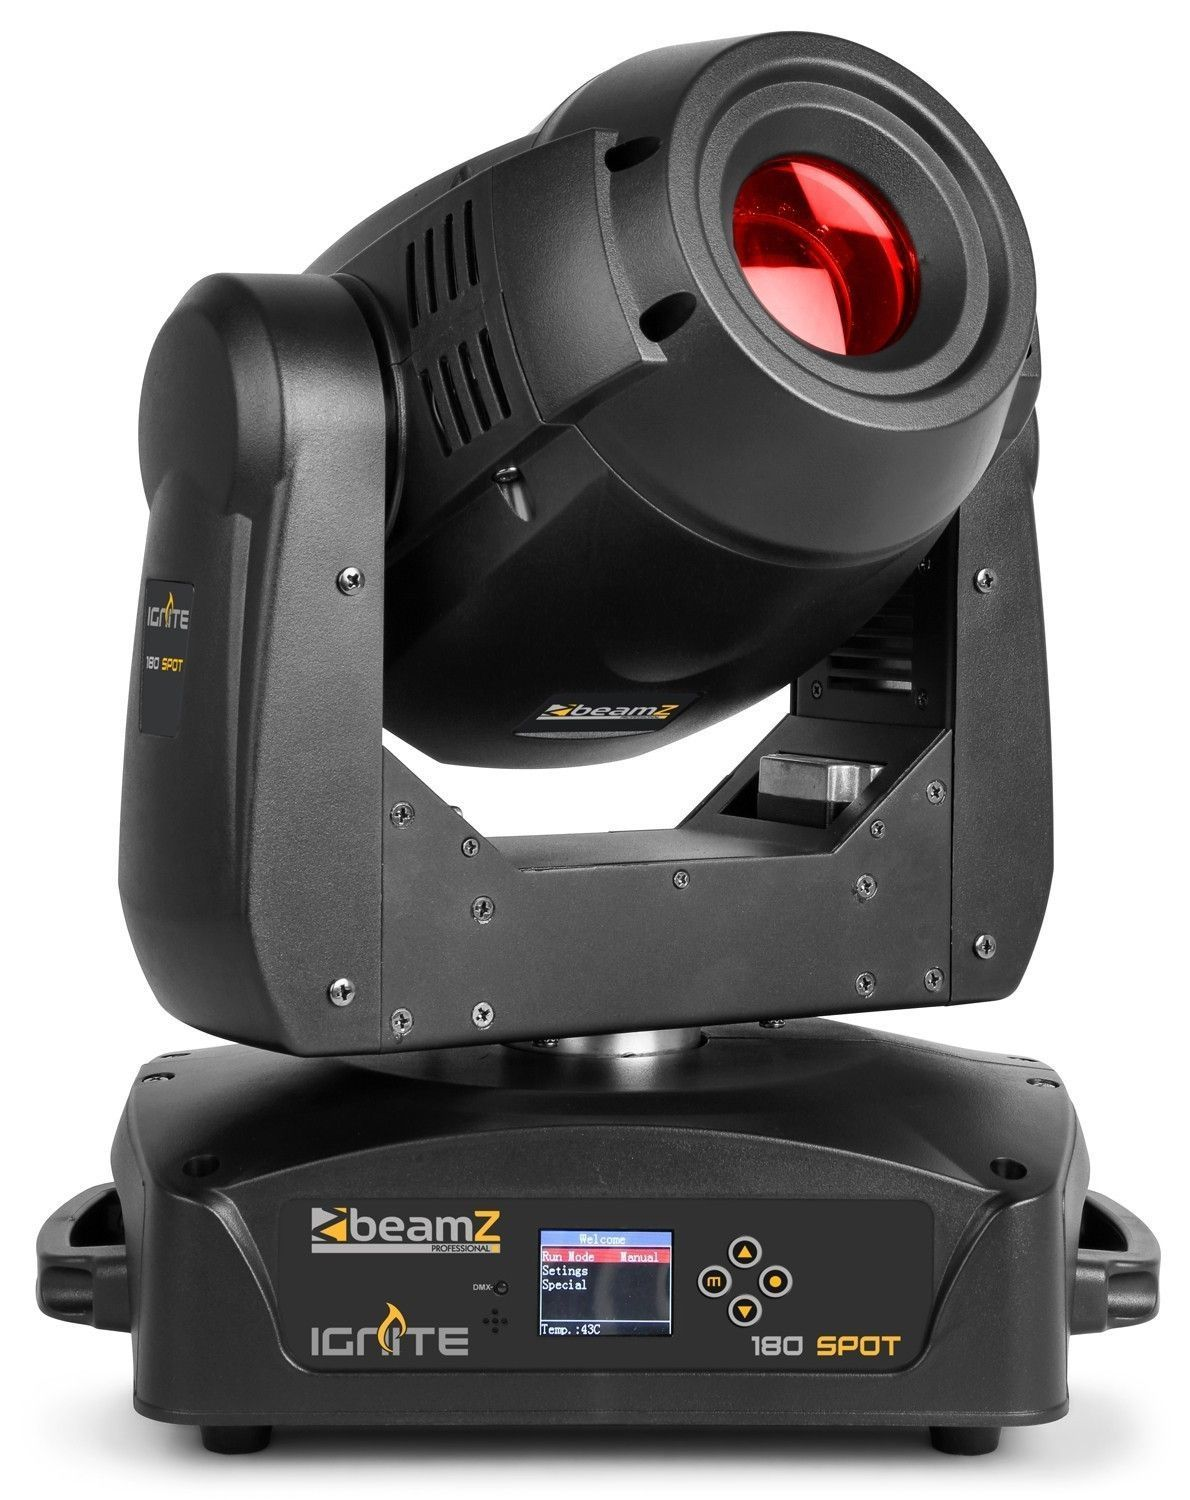 BeamZ IGNITE180 LED Moving Head 180W Spot